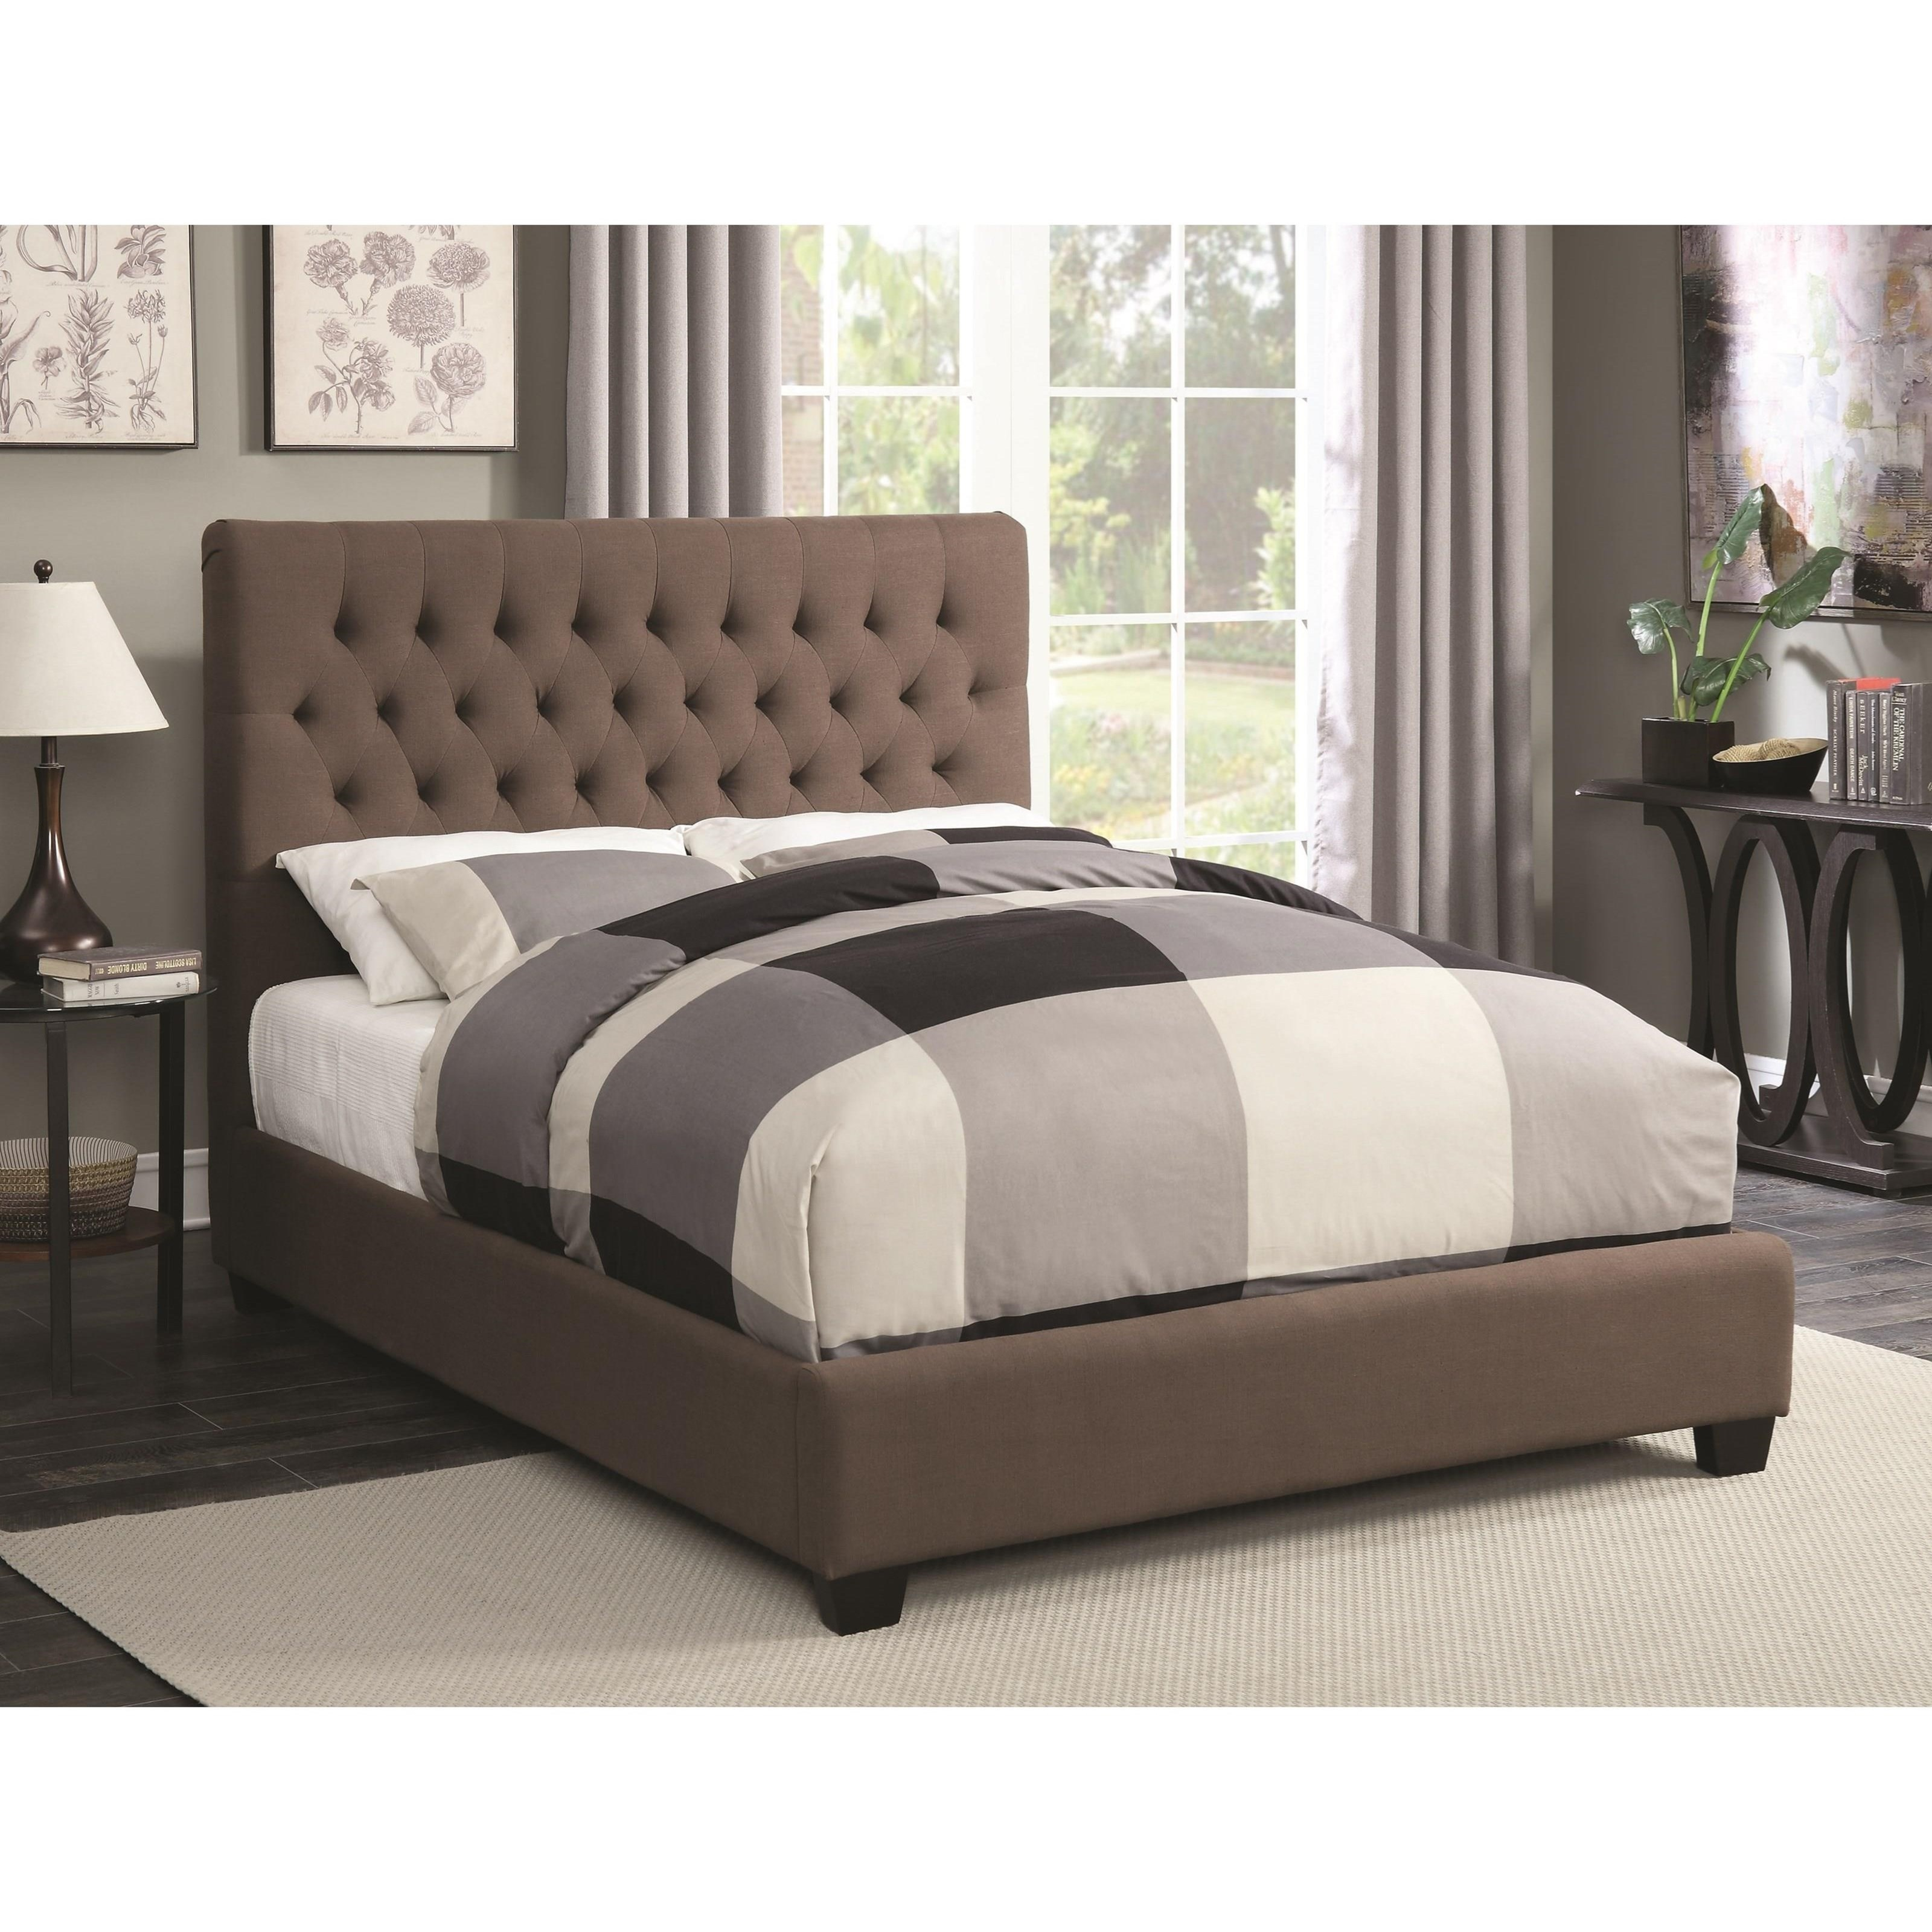 Coaster Upholstered Beds Queen Chloe Upholstered Bed - Item Number: 300530Q